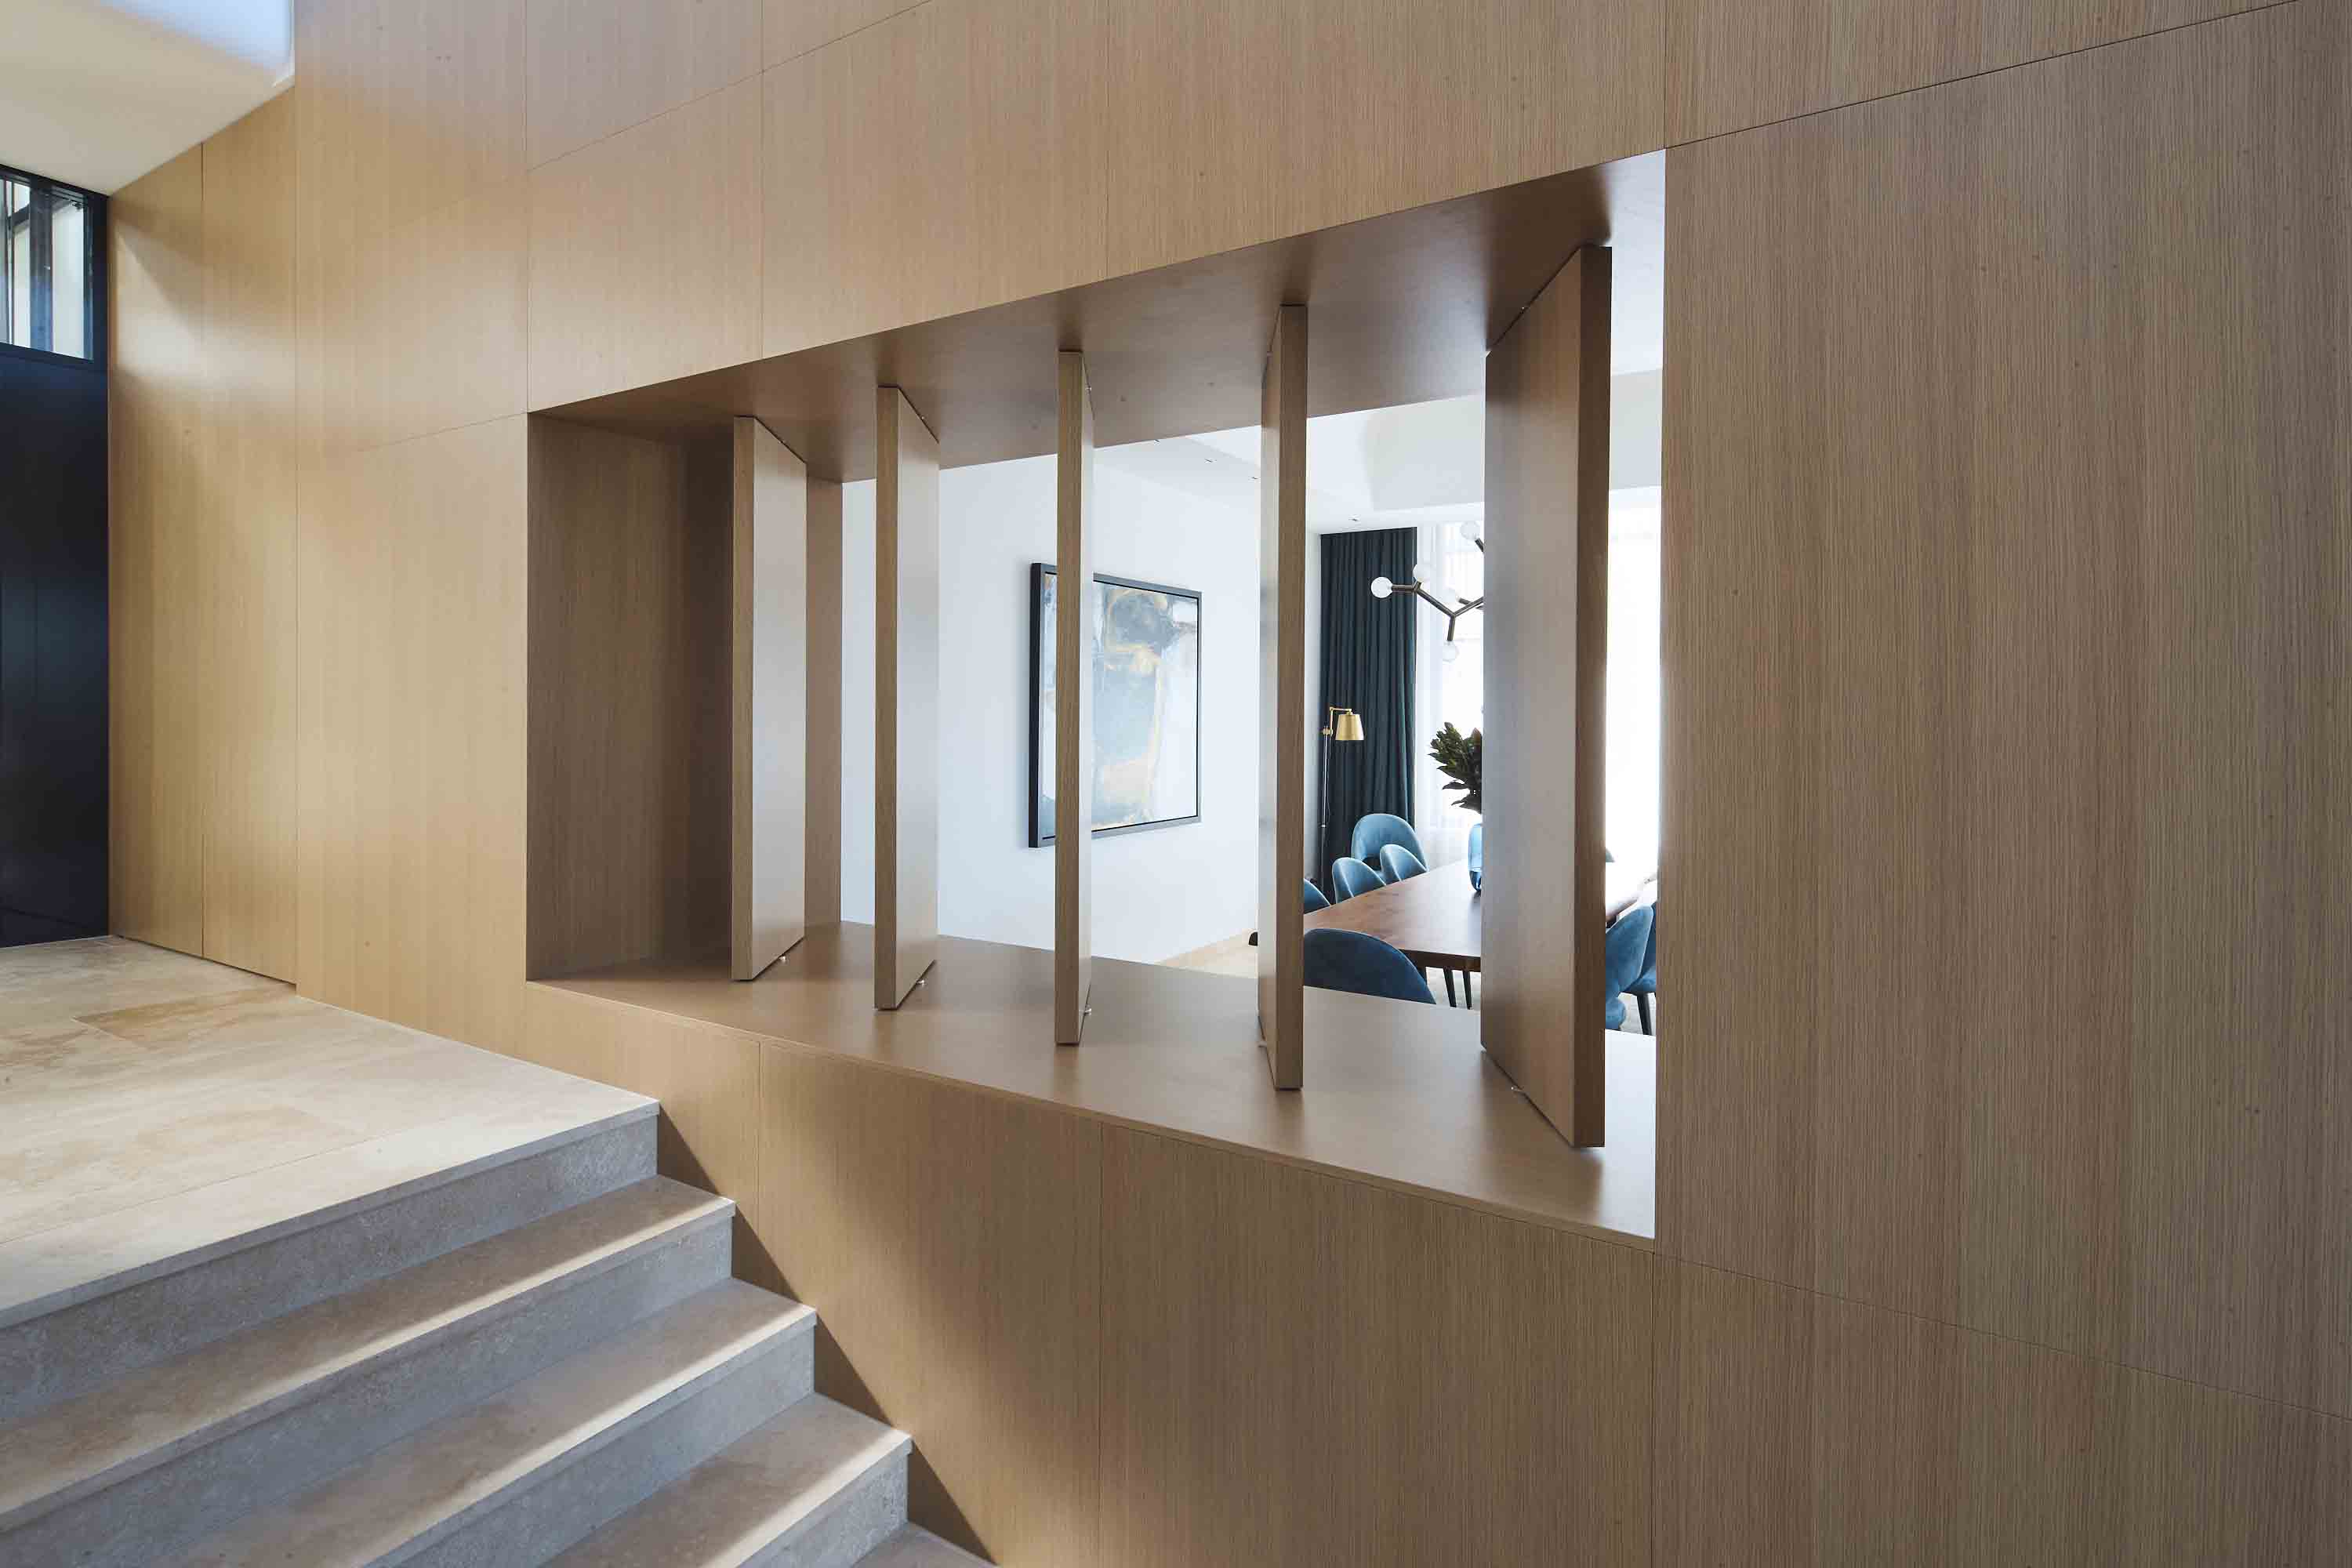 325.-Space-Joinery-louvres-with-FritsJurgens-System-One03.jpg